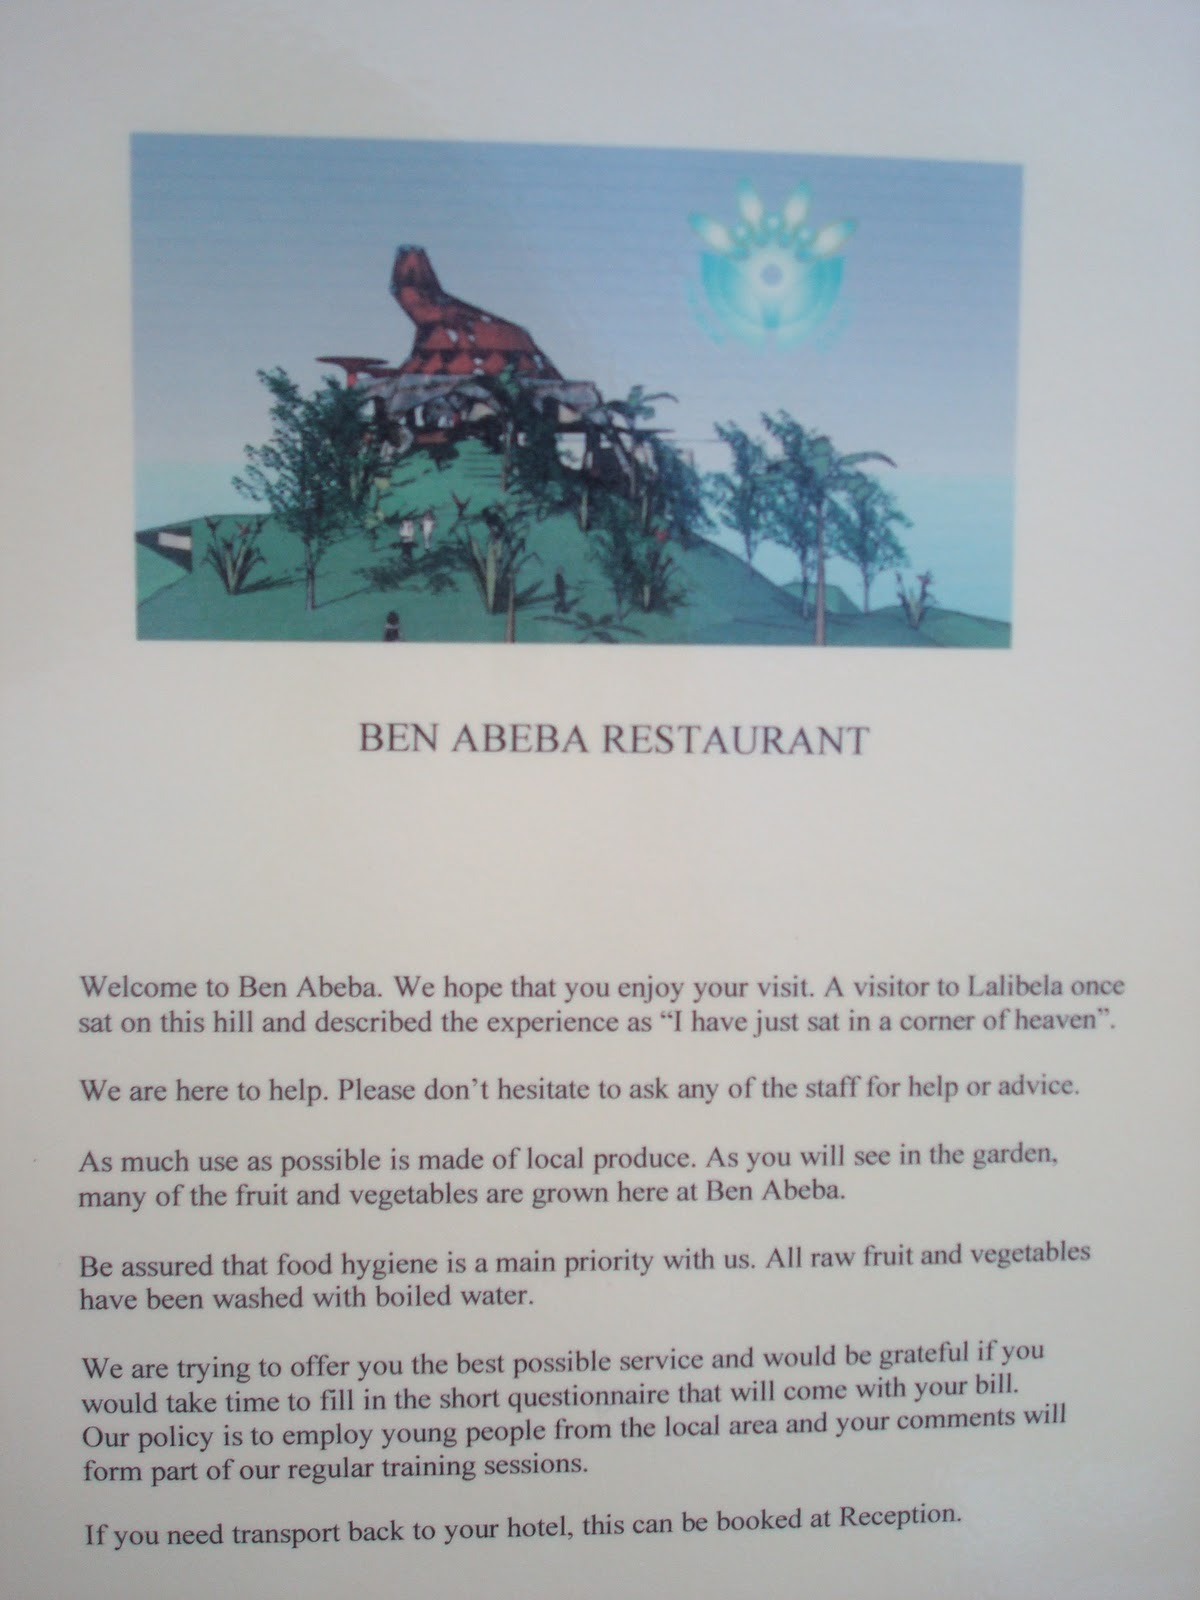 the must restaurant ben abeba in lalibela allaboutaddis a welcome address featuring the picture